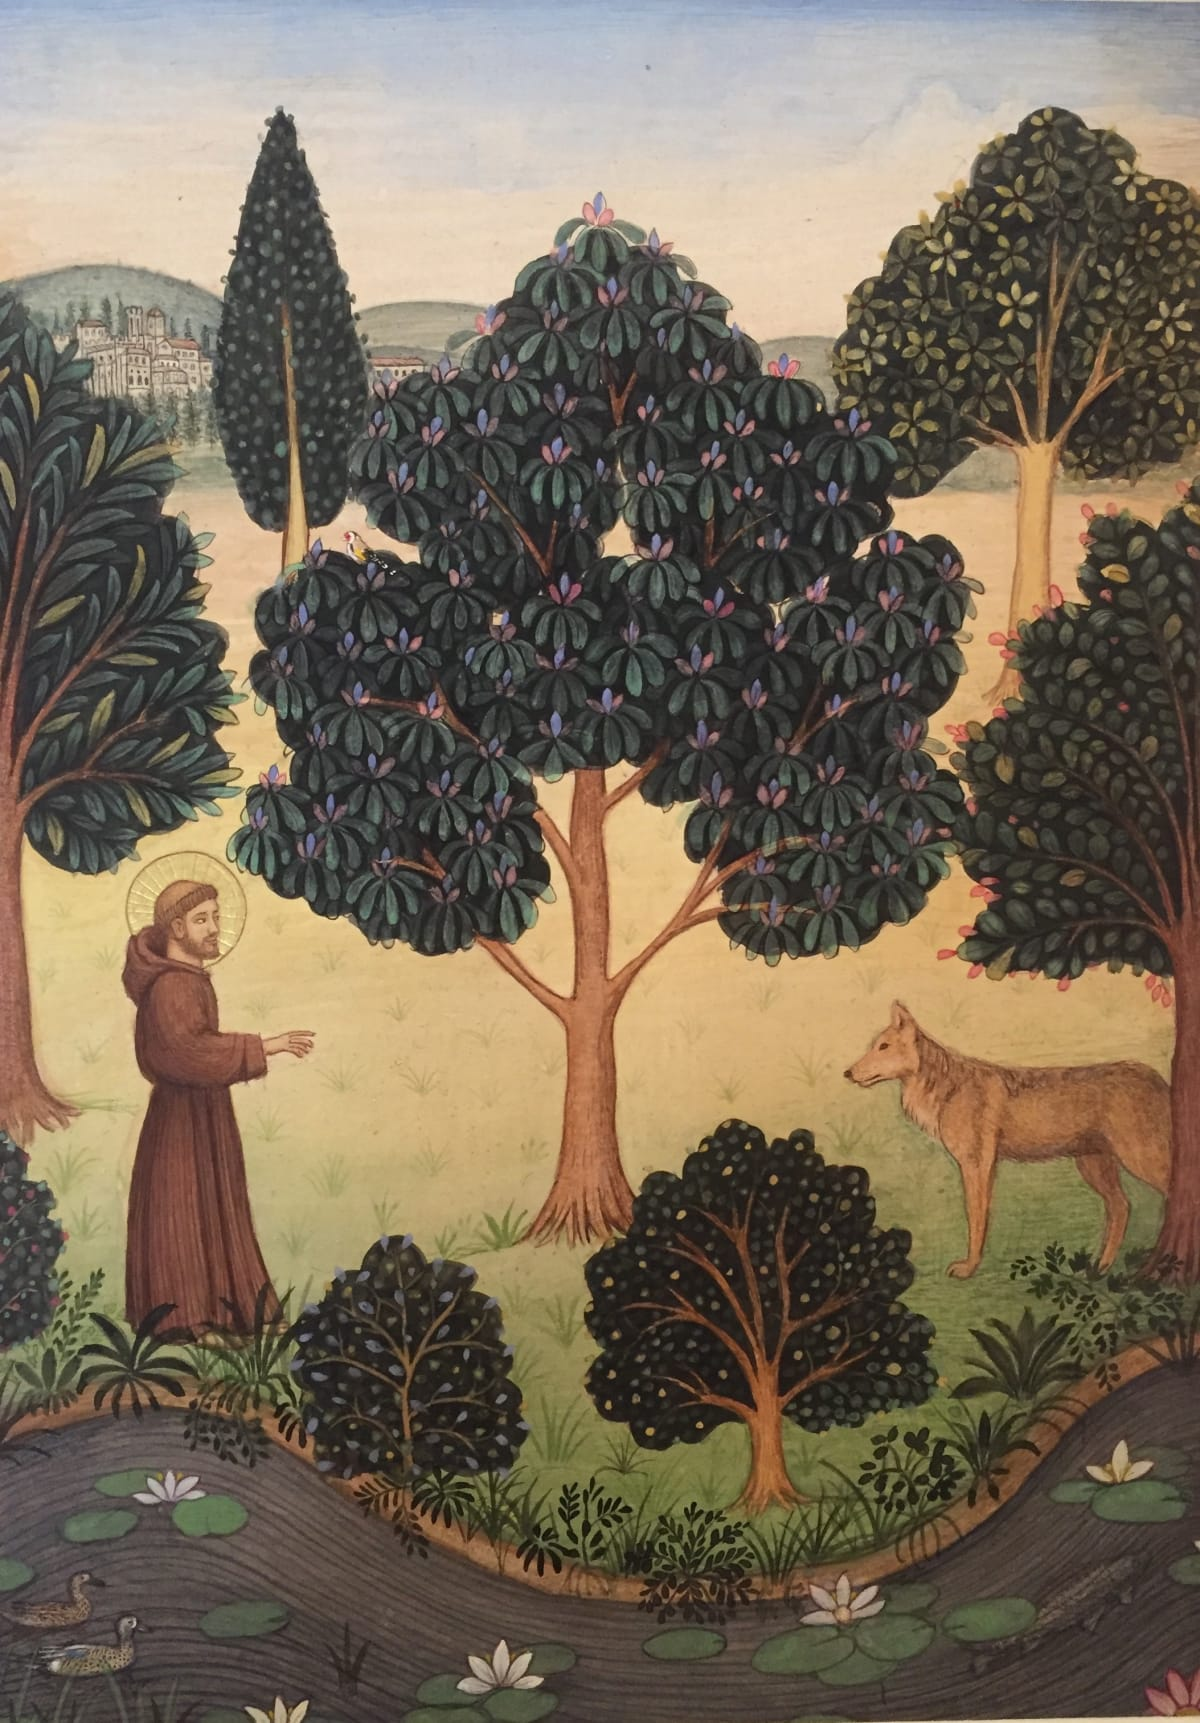 Jethro BUCK (b.1986) St Francis with Brother Wolf, 2017 Natural pigments on Sanganer paper 10 5/8 x 7 ½ inches / 27 x 19.2 cm